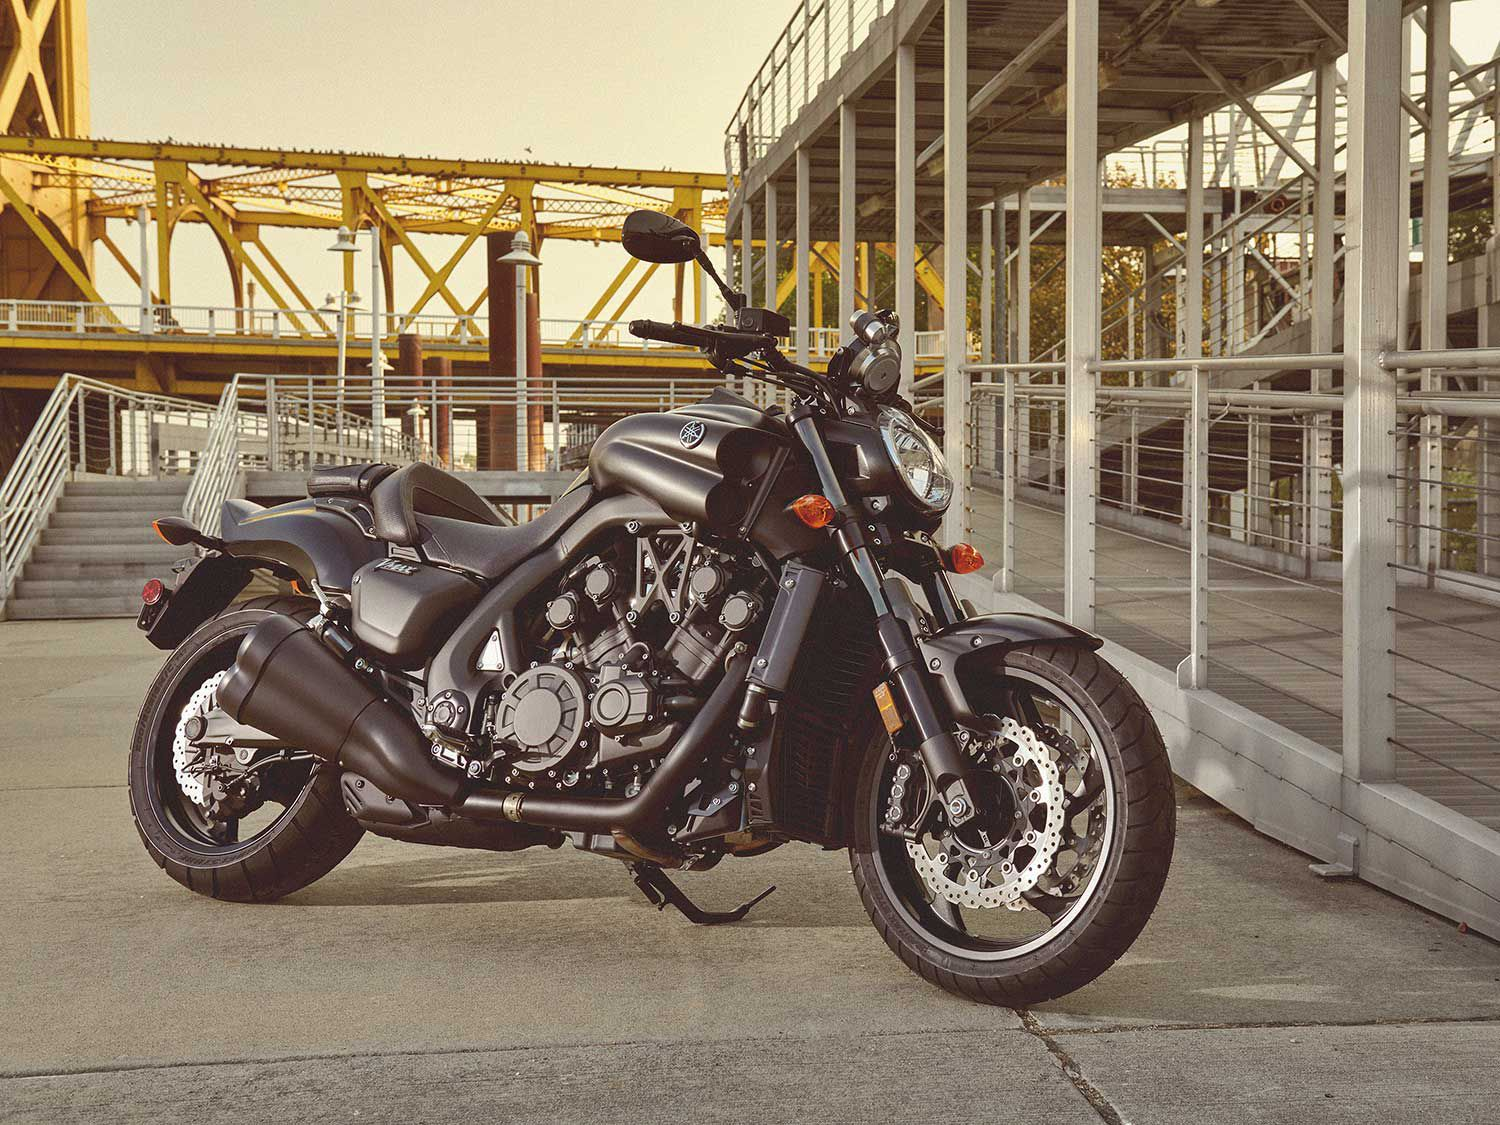 "Yamaha returns its mighty 170-hp-plus VMAX to its US model line for 2020. <a href=""https://www.motorcyclistonline.com/2020-yamaha-vmax-first-look-preview/"">Read the full preview »</a>"